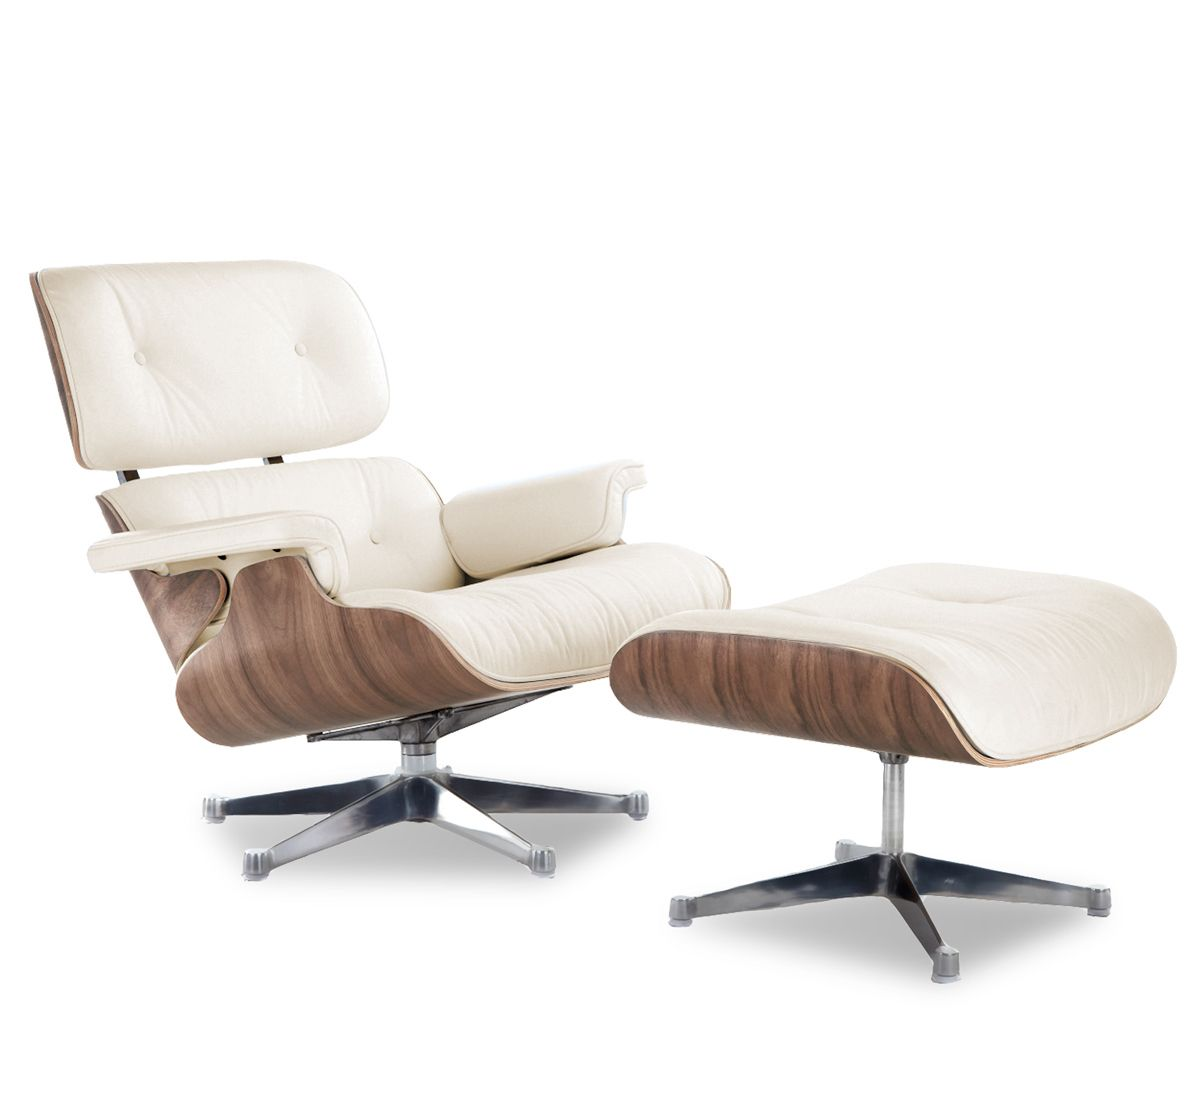 Check Out The Eames Lounge Chair Replica In Cream From Manhattan Home  Design. This Classic Lounge Chair And Ottoman Looks Beautiful In Cream  Leather.